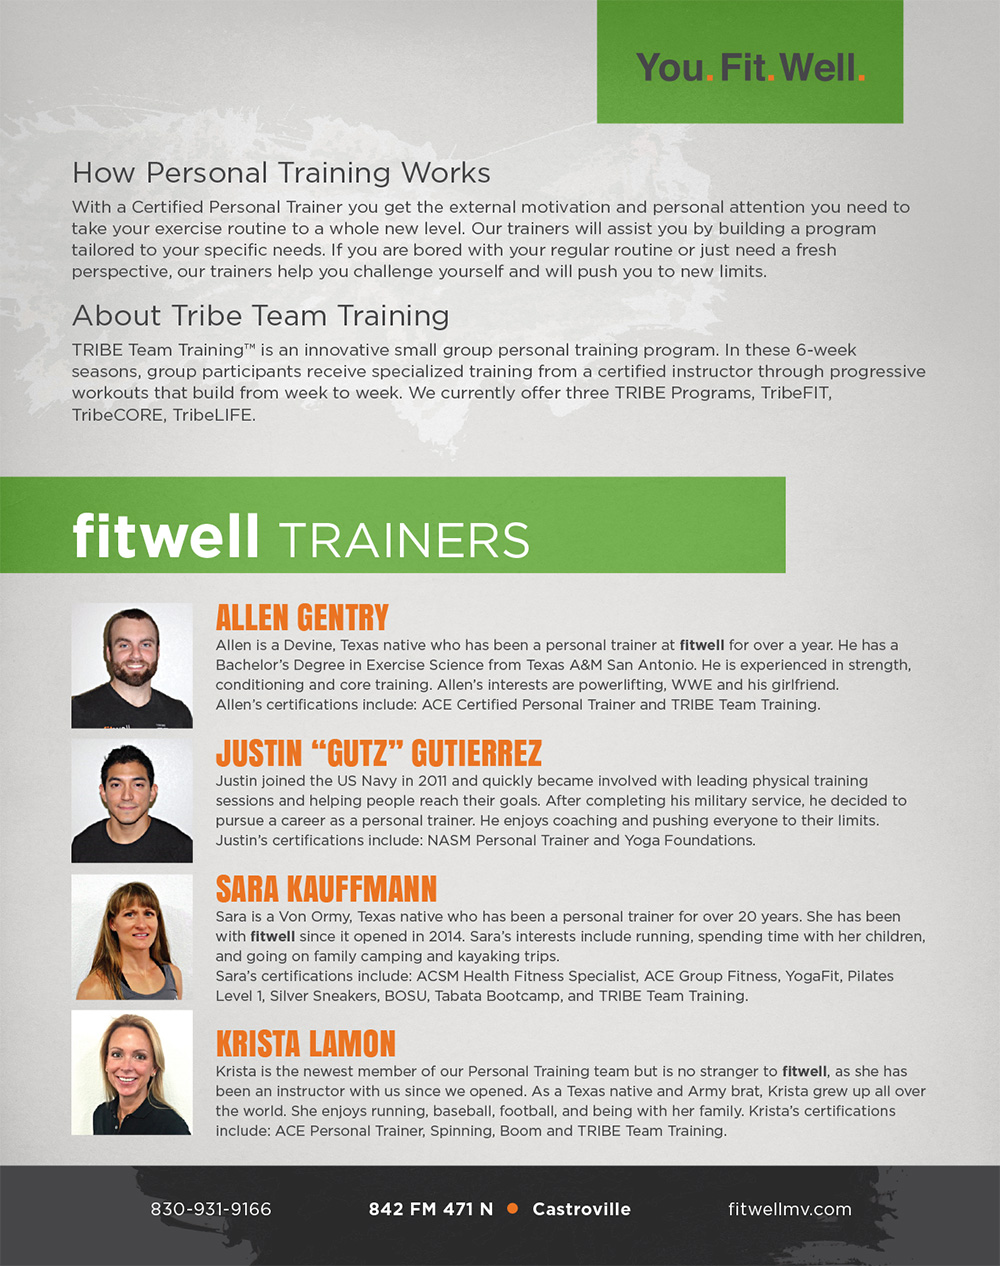 Fitwell Personal Training Onesheet Carrie D Lewis Graphic Design